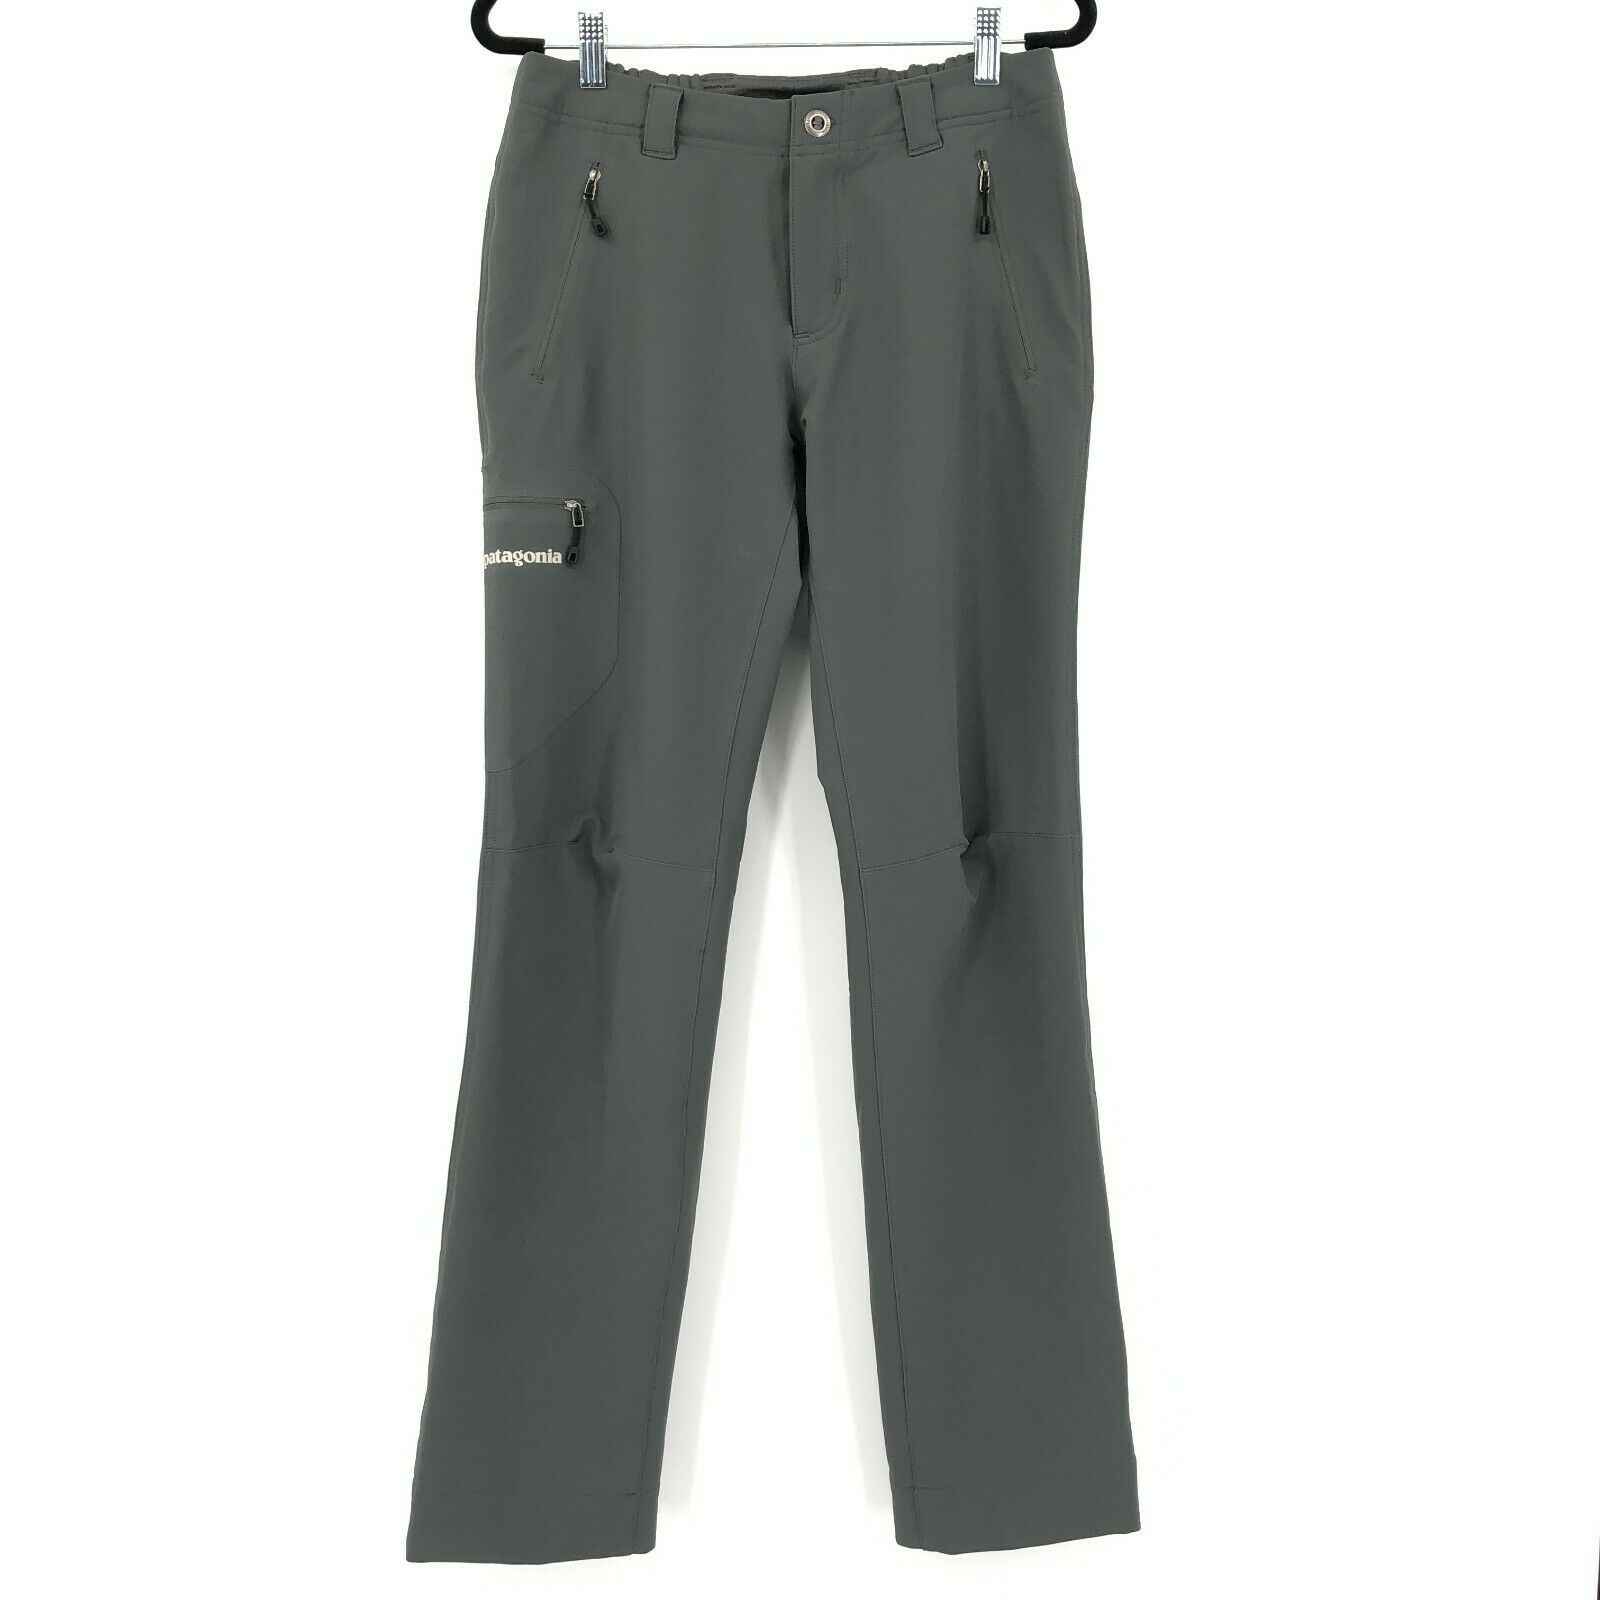 Patagonia Tactical Zip Pockets Moisture Wicking Hiking Outdoor Pants Gray Size 4